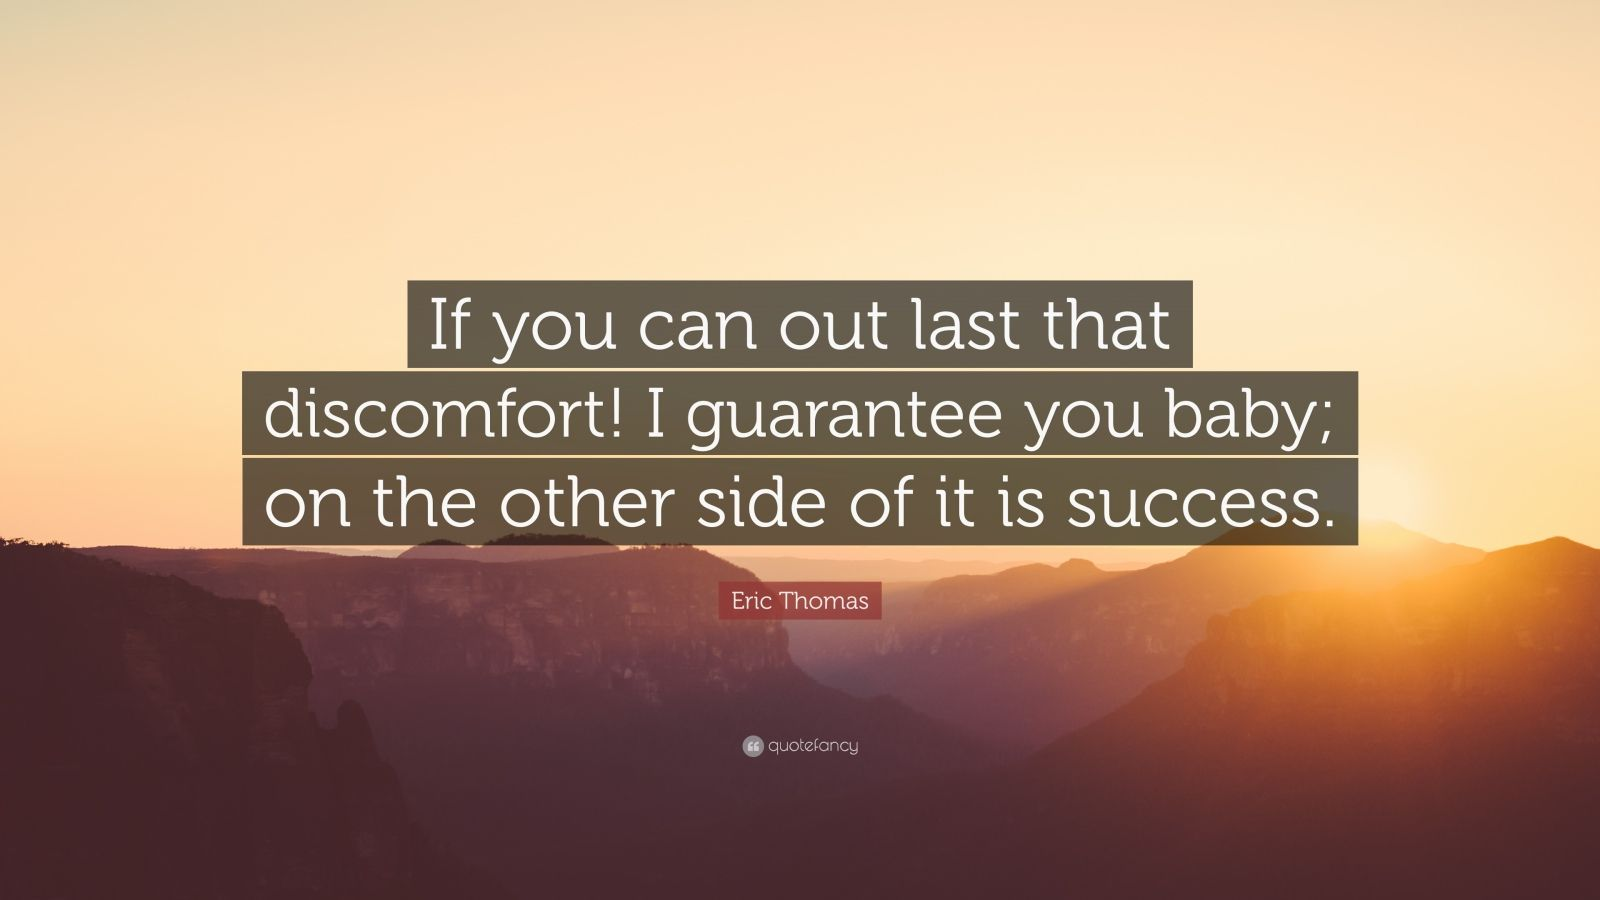 """Eric Thomas Quote: """"If you can out last that discomfort! I guarantee you baby; on the other side of it is success."""""""